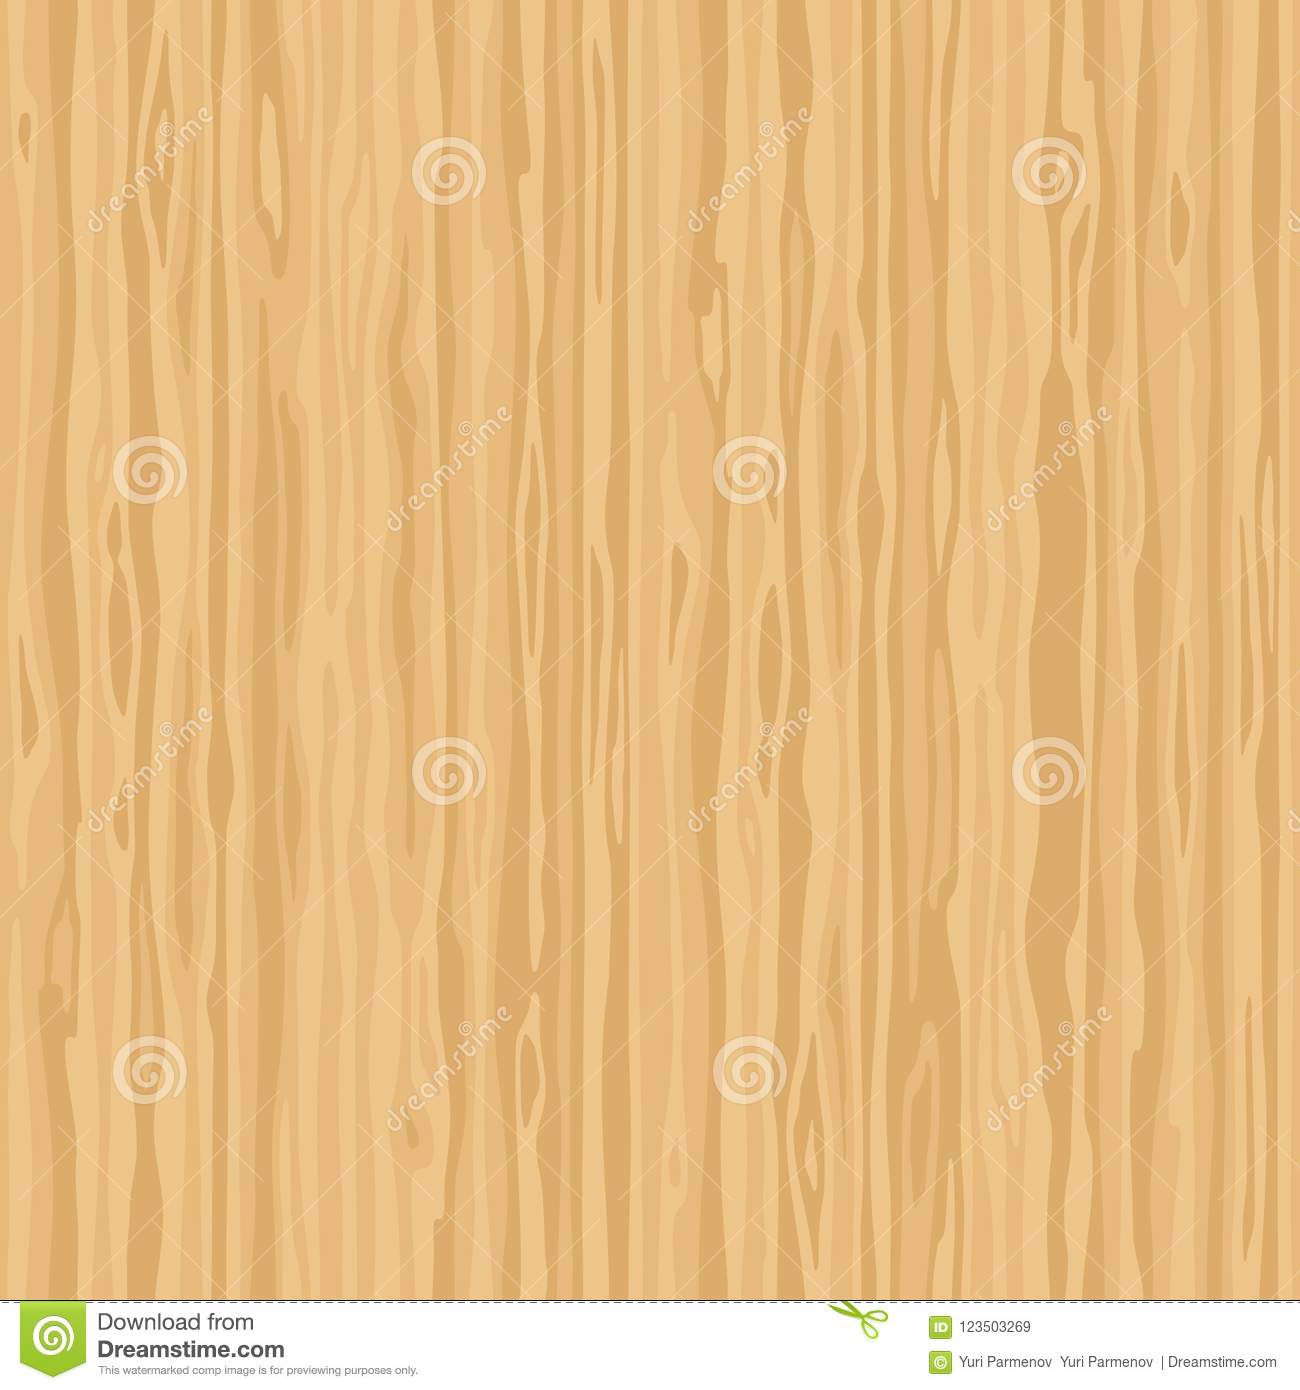 Download Natural Beige Wooden Wall Plank Table Or Floor Surface Cutting Chopping Board